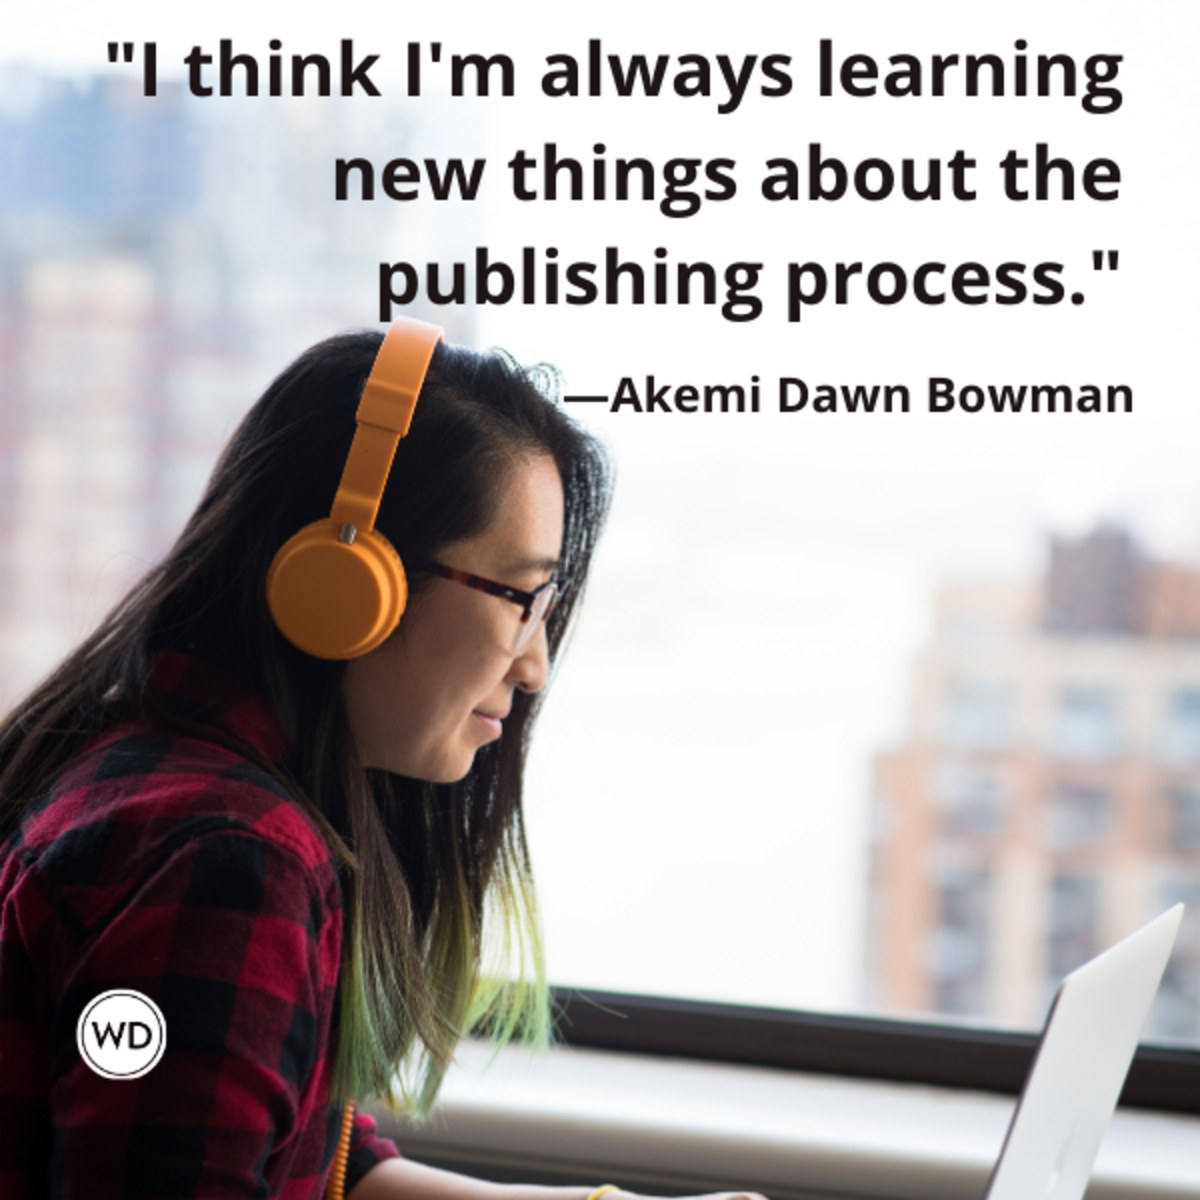 akemi_dawn_bowman_quotes_i_think_im_always_learning_new_things_about_the_publishing_process